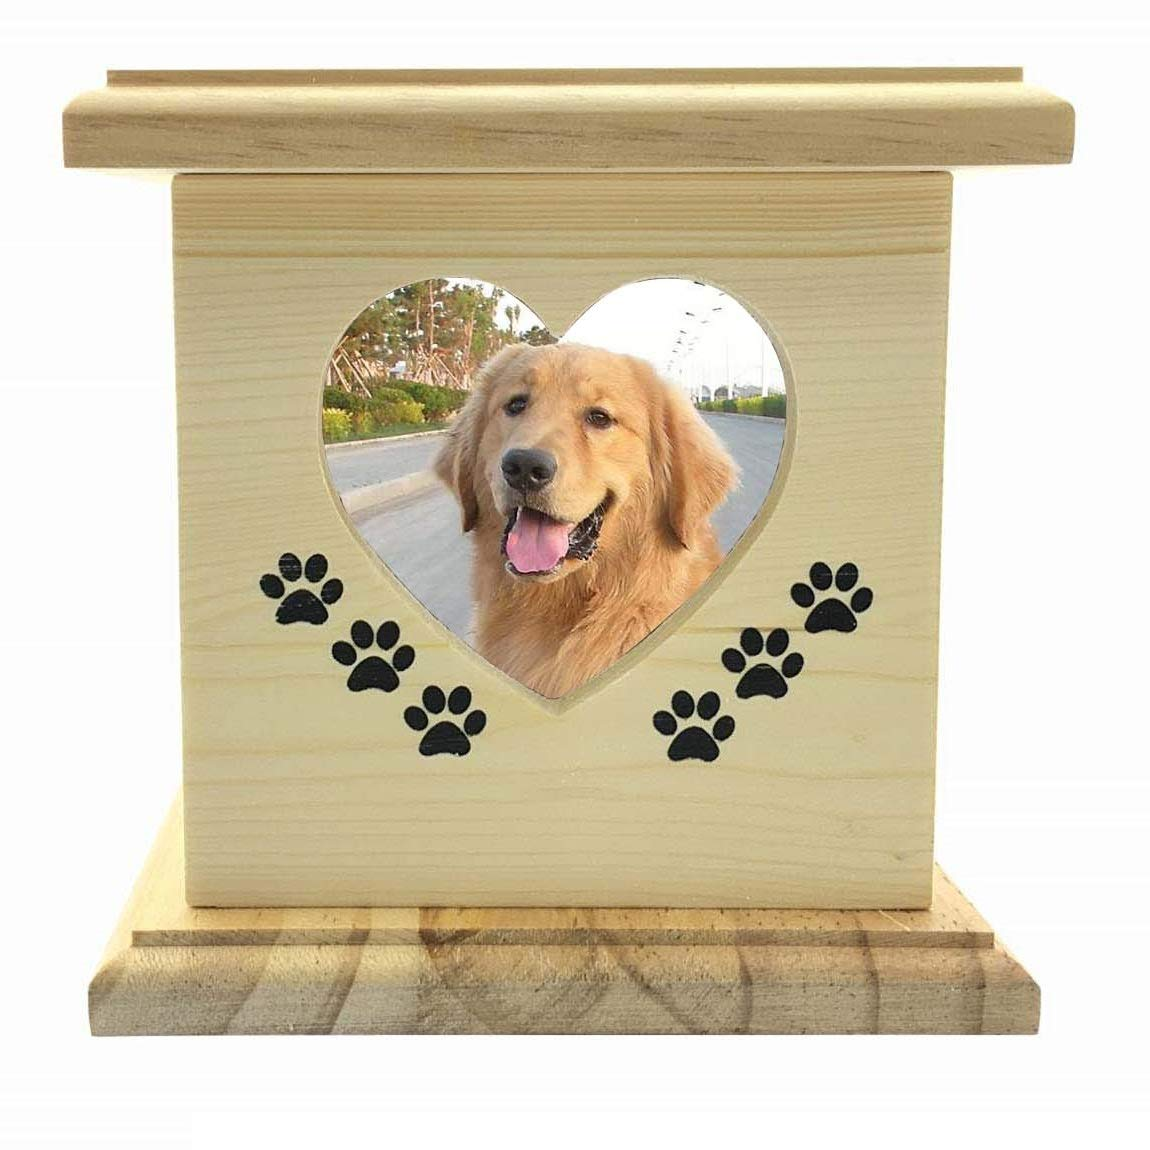 LONGXI Solid Wood & Hand Made with Photo Frame Dog Cat Pet Casket Animal Coffin Commemorate The Coffin Box Wooden Pet Cremation Urn